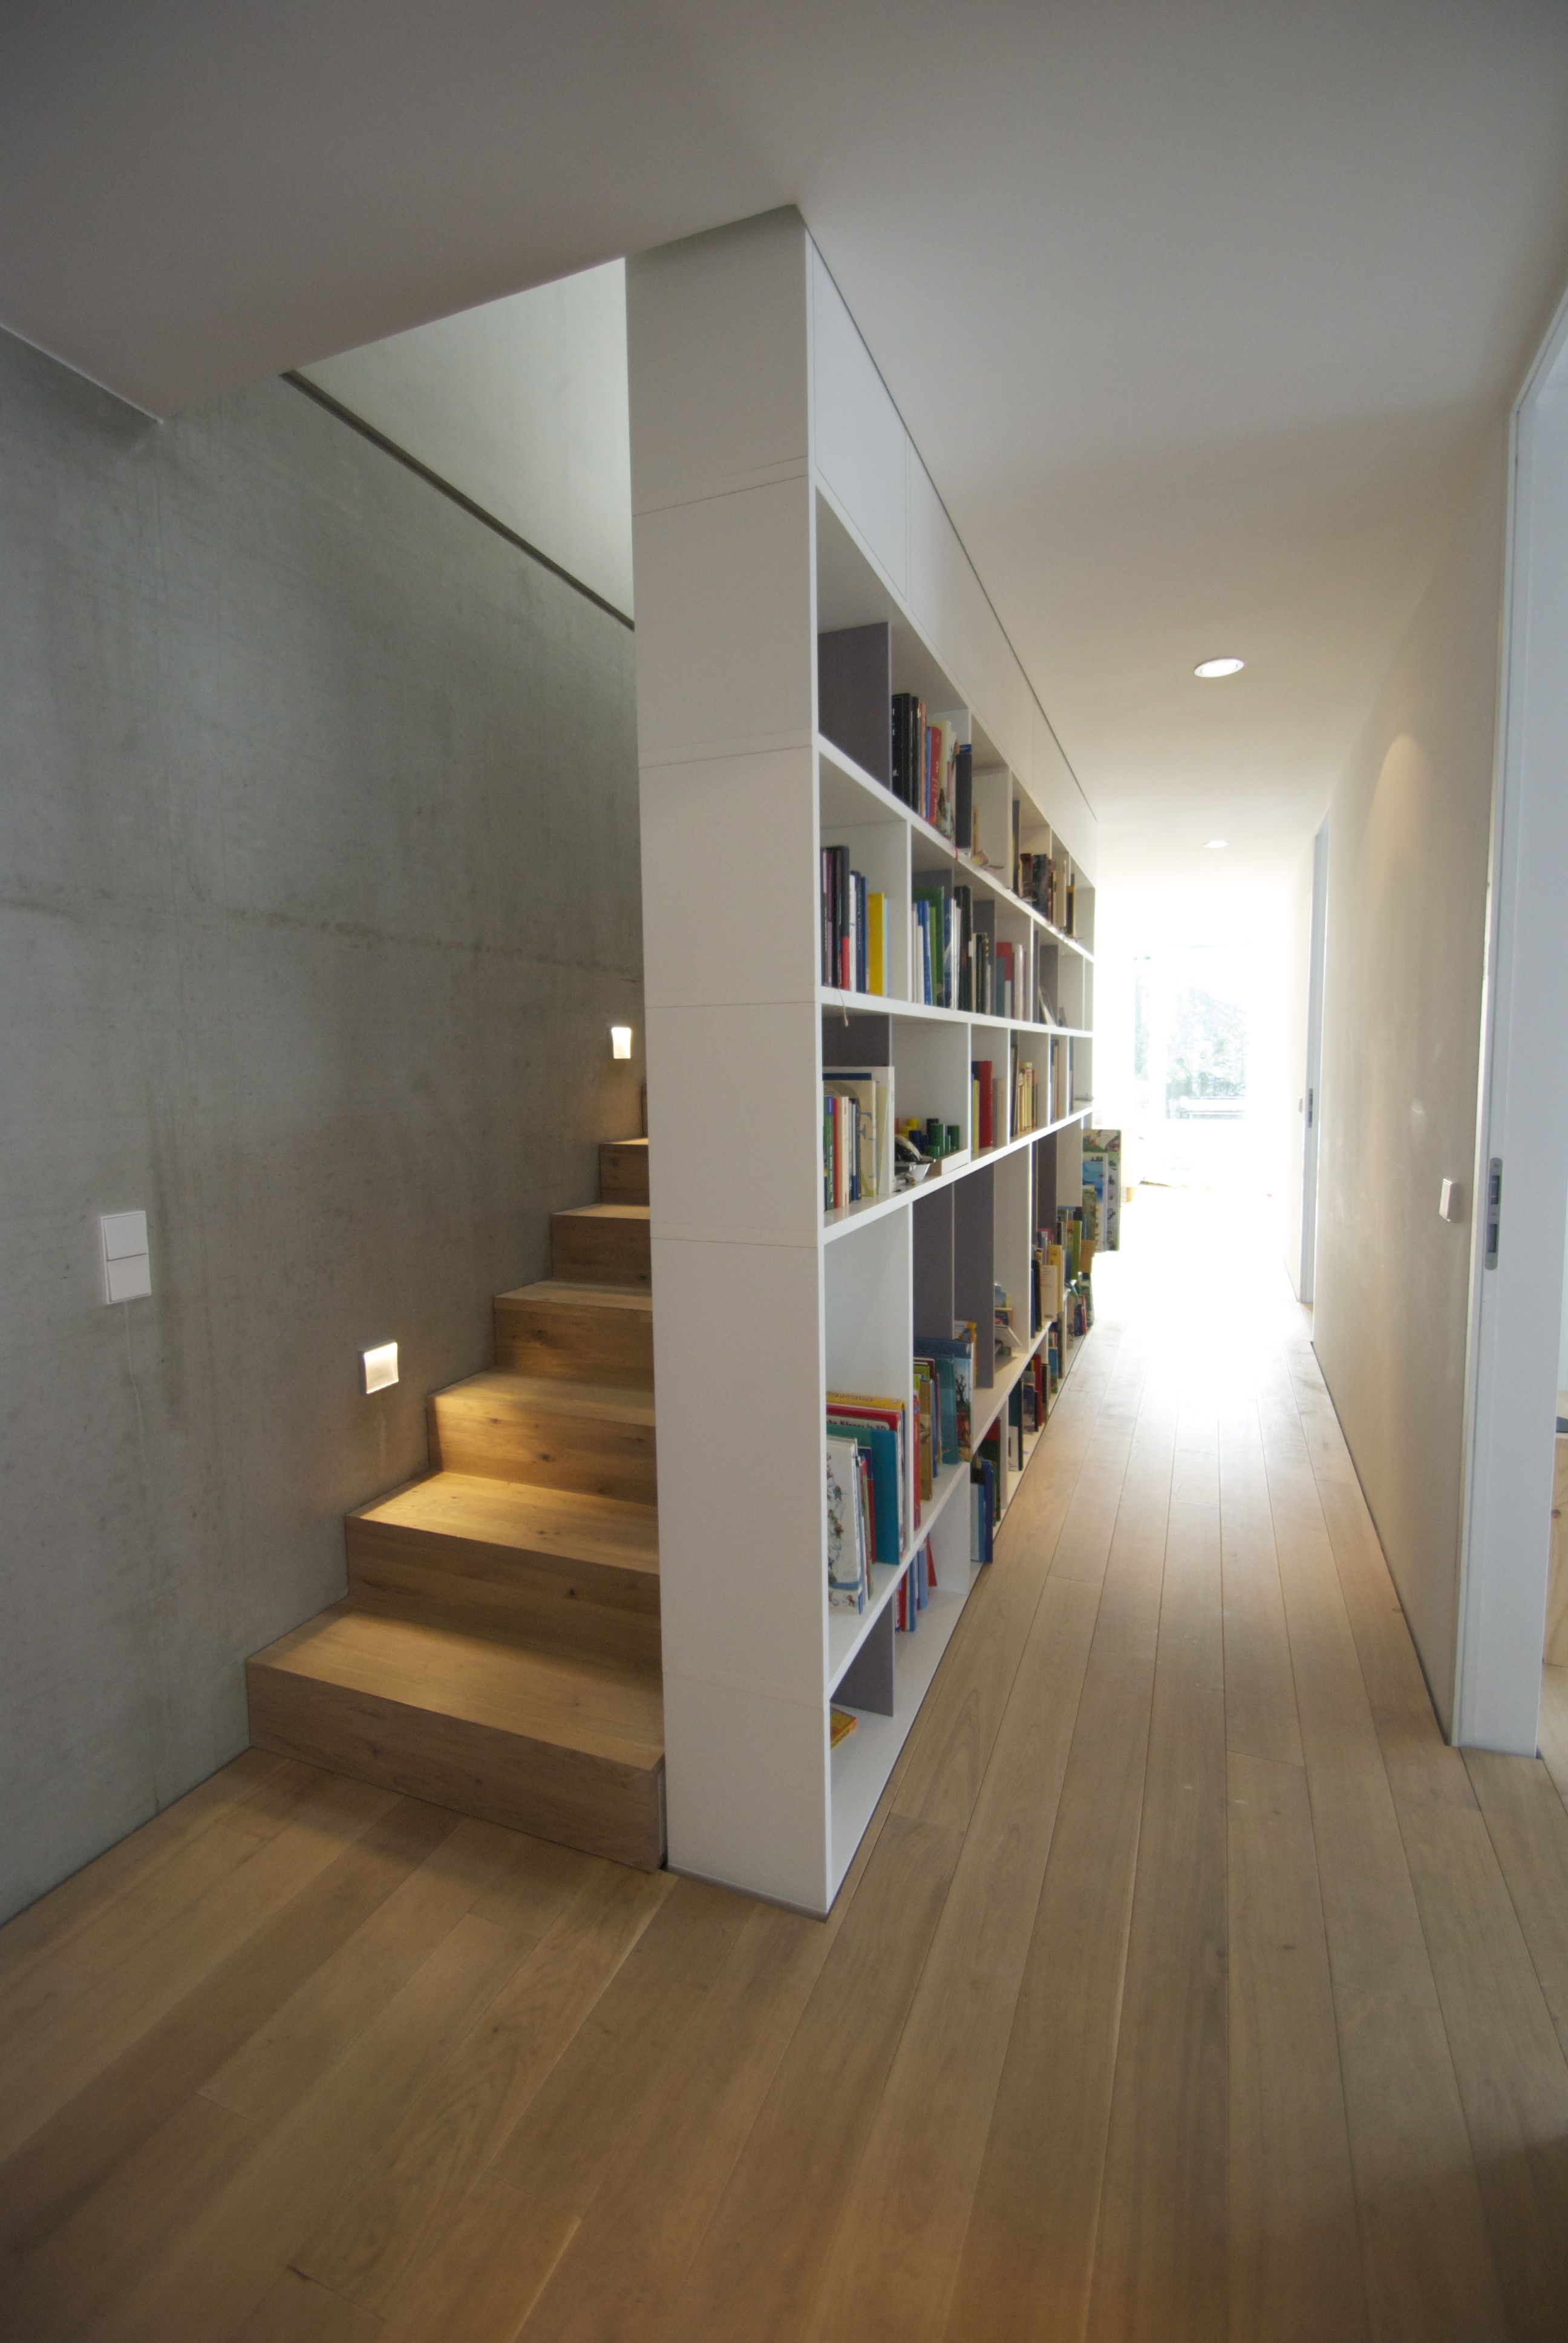 Haus flur design-ideen pin by bethoven  on arquitectura  pinterest  staircases metal